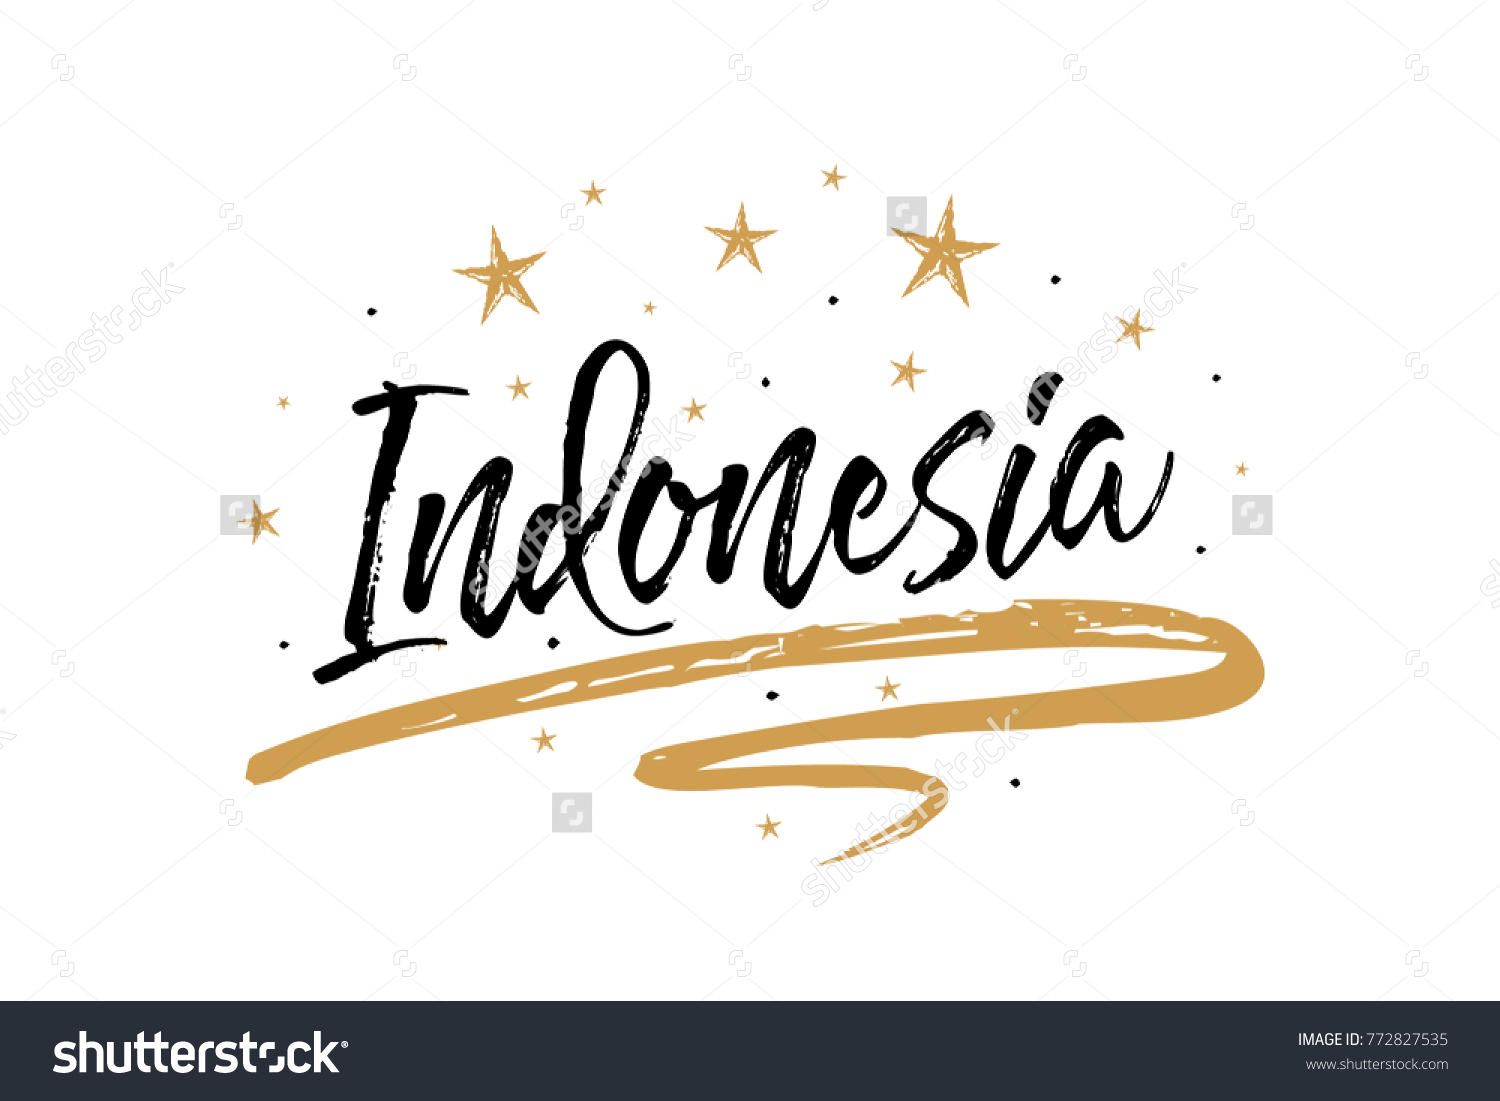 indonesia name country word text card のベクター画像素材